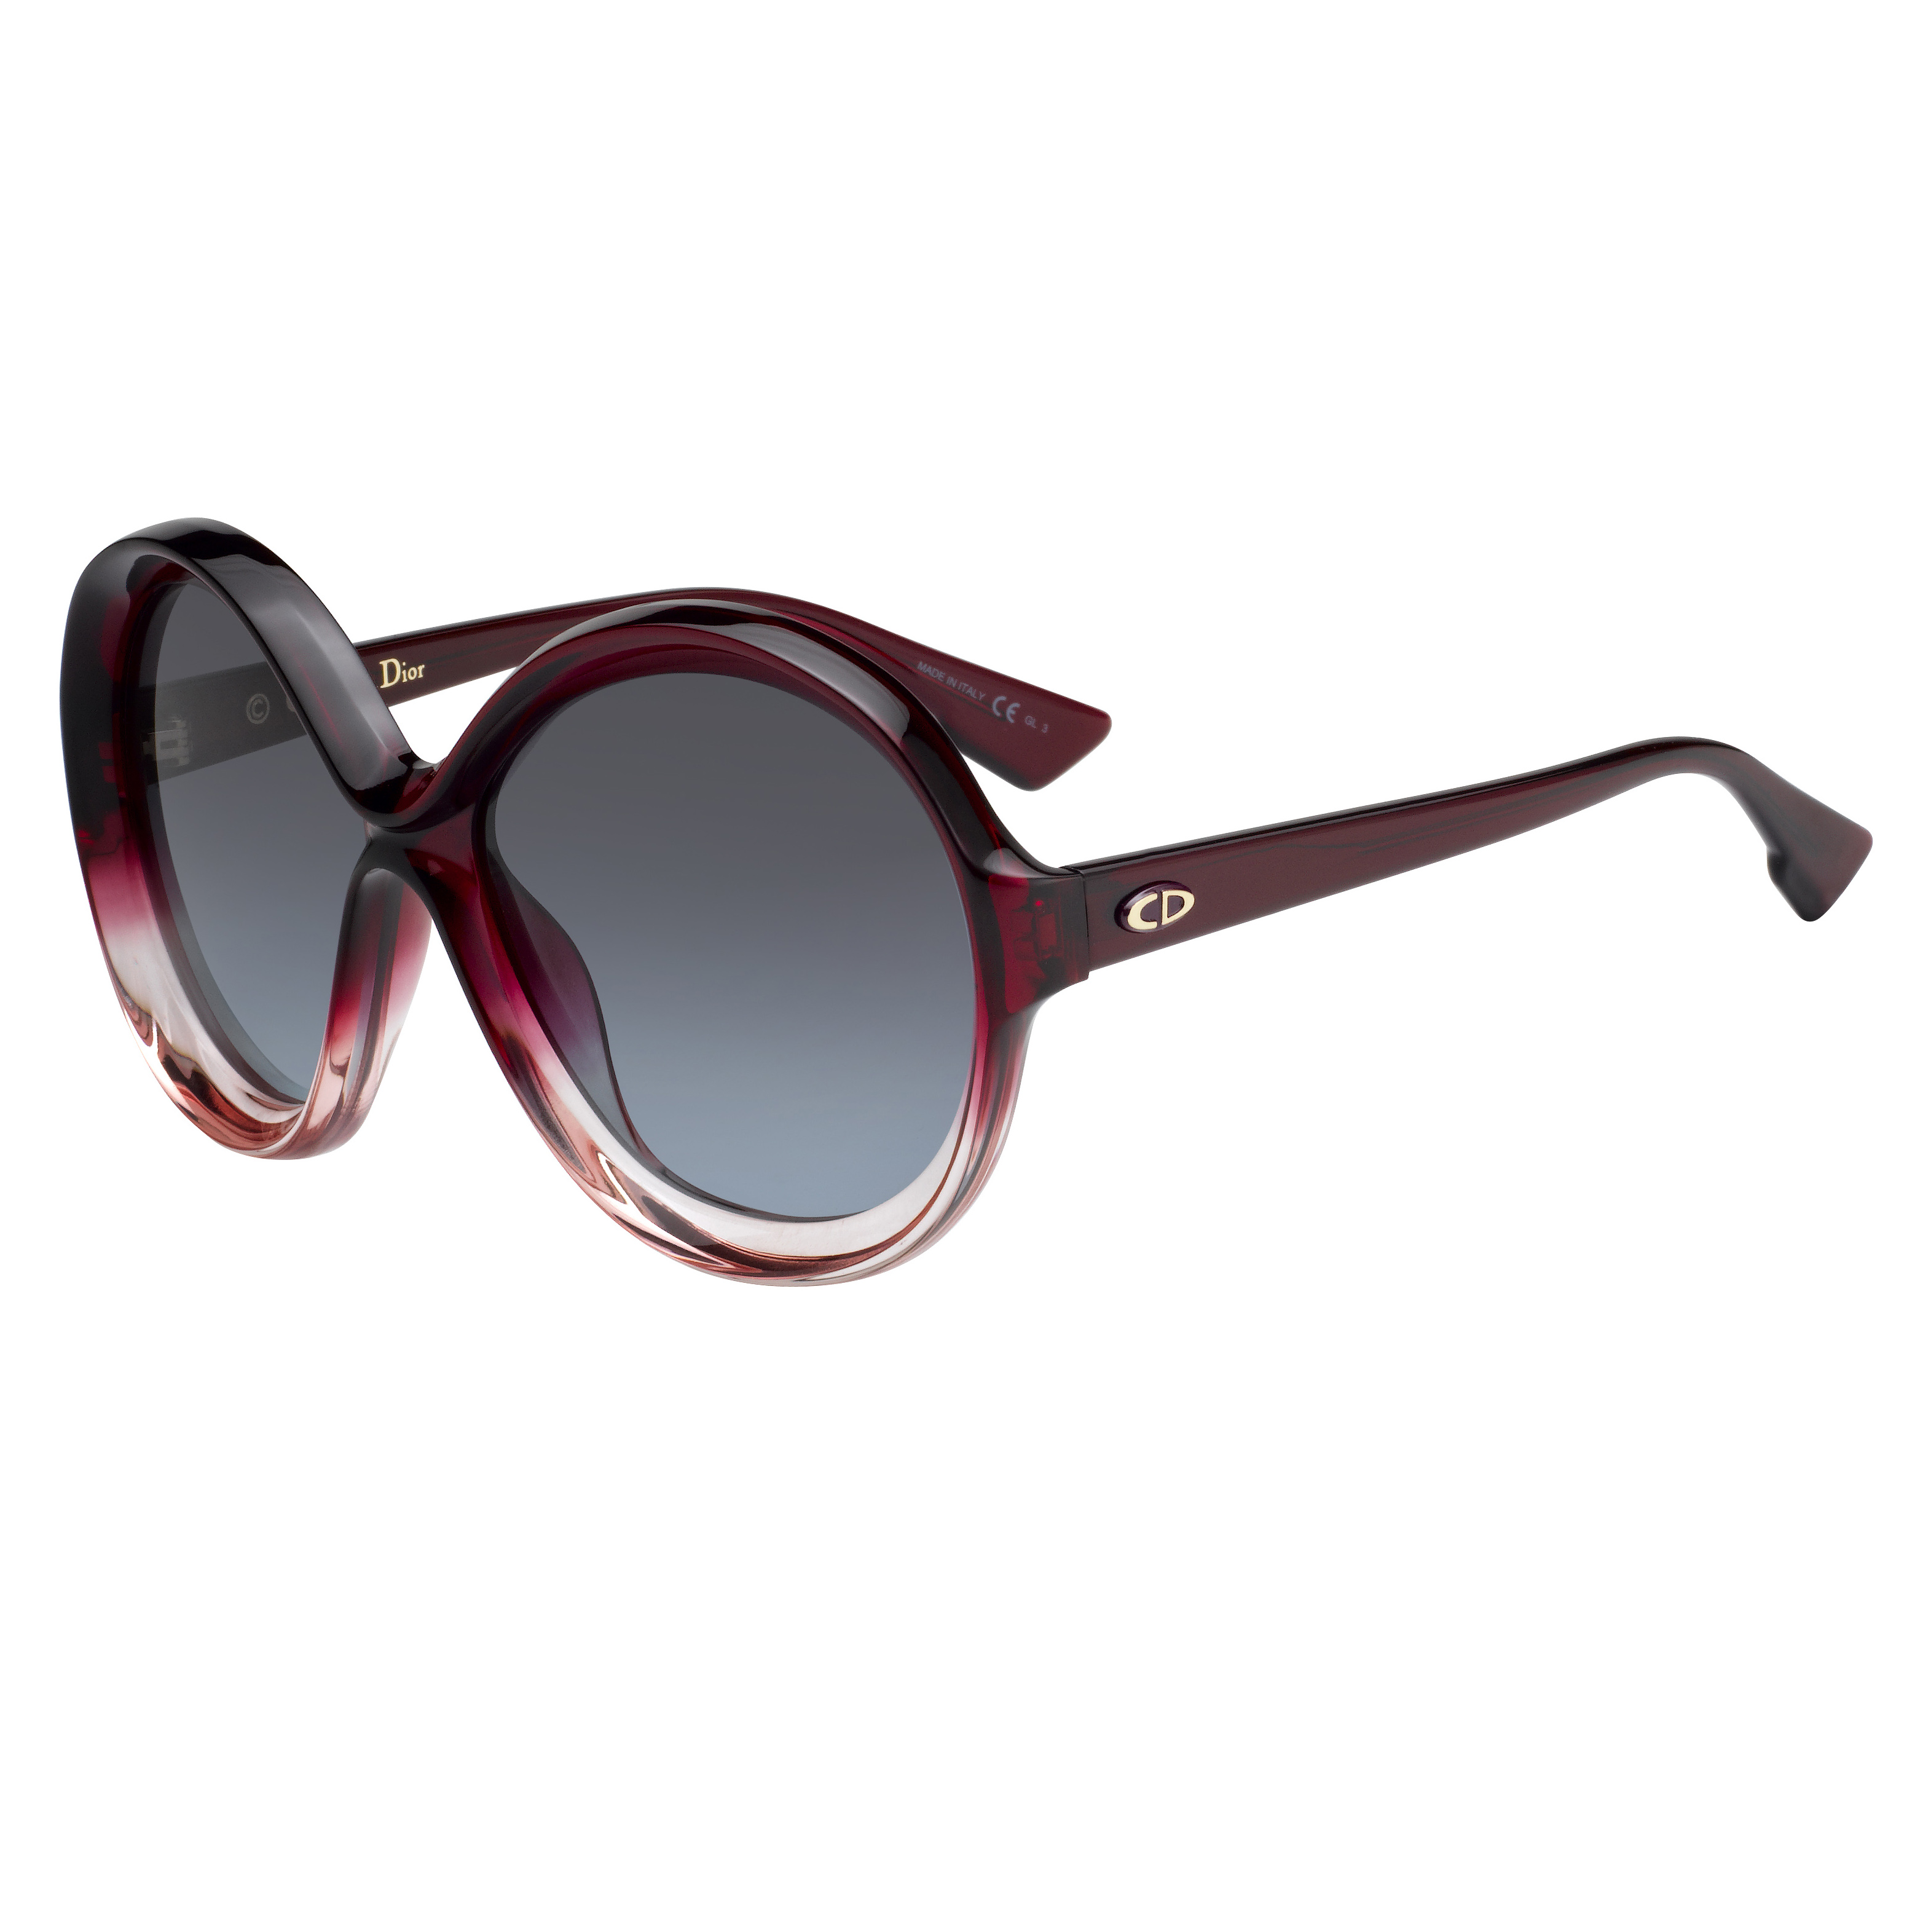 1ed0016cff6 Dior Brand Is From Which Country